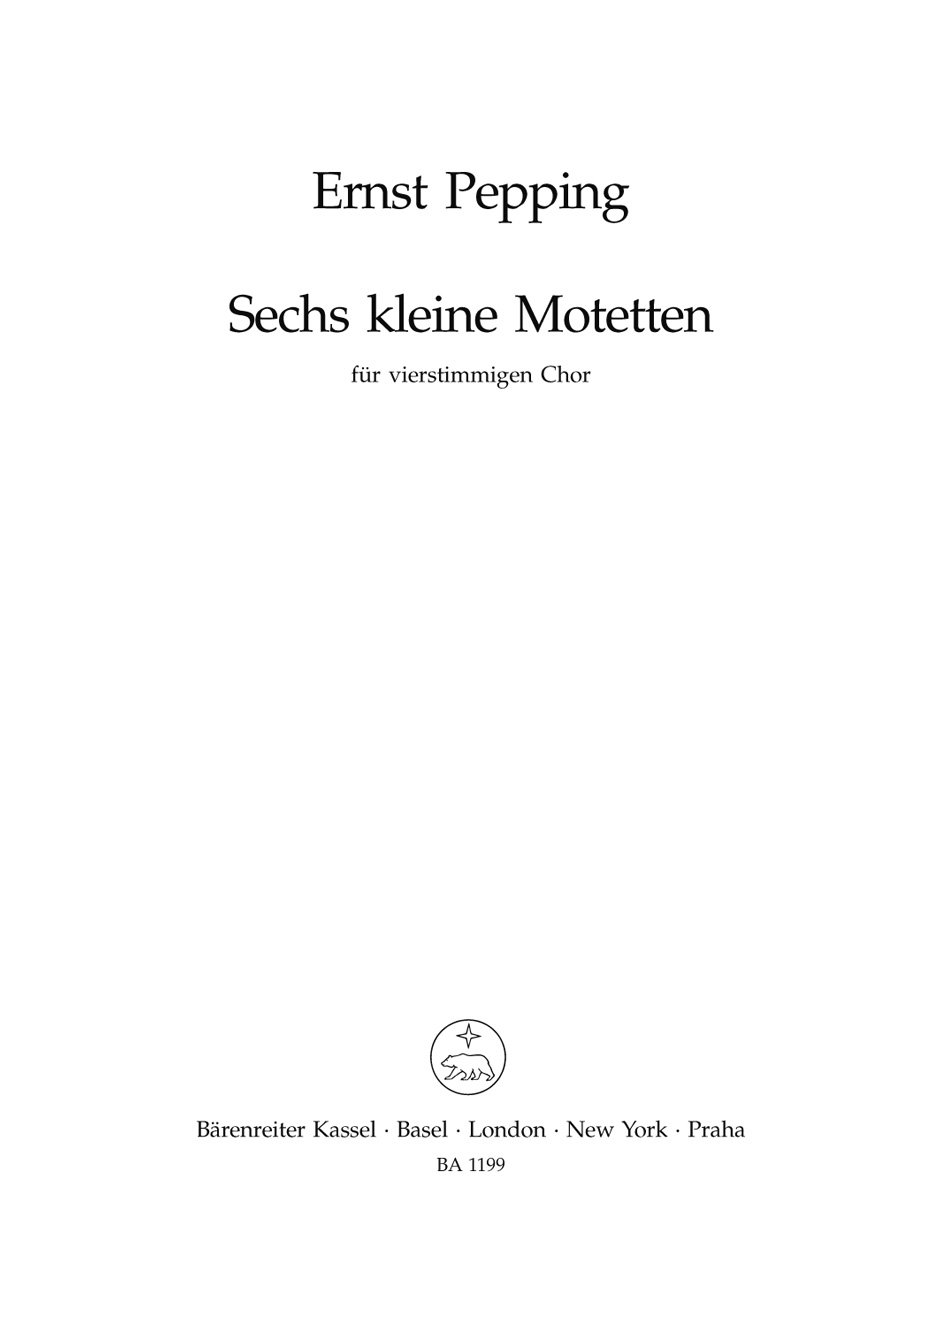 fair and soft and gay and young for mixed chorus satb a cappella from five sad and humorous songs in jazz rock set to 17th century english poems